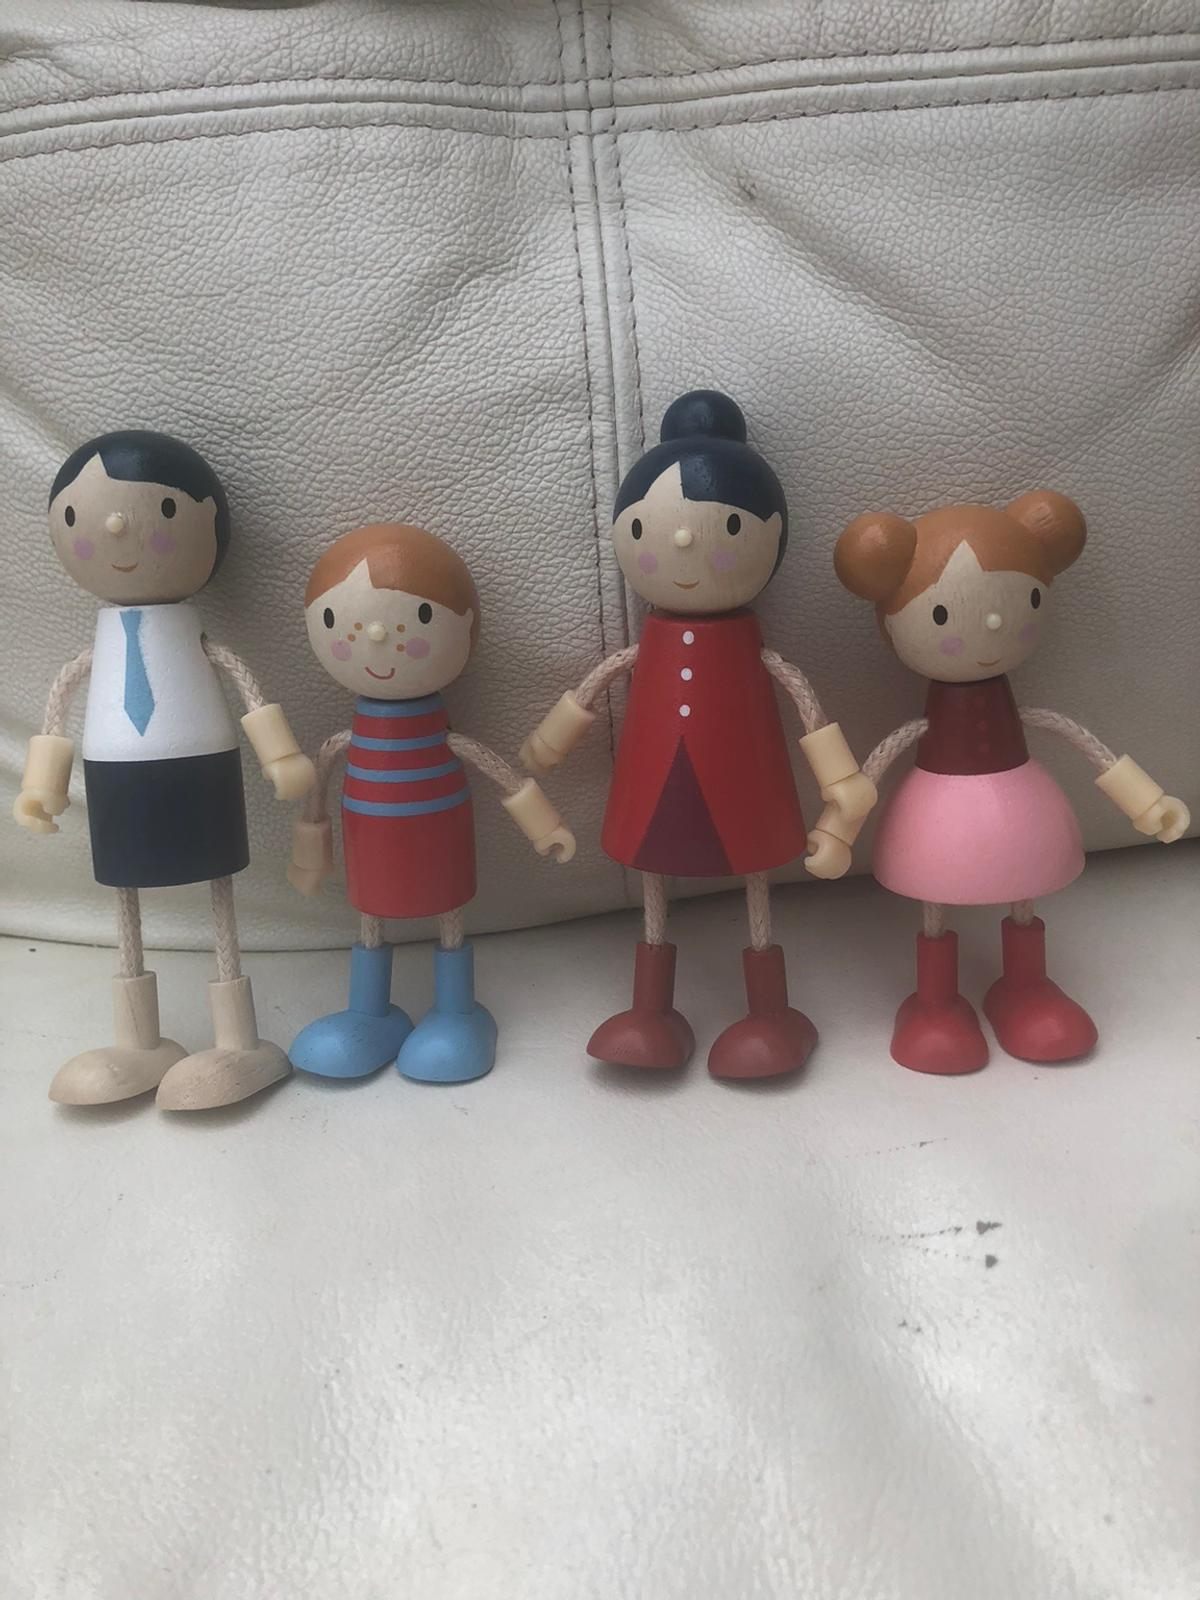 Fully posable Dolls House family made of wood. Flexible arms and legs for creative play. The set includes mother, father, little brother and little sister. Suitable for all wooden dolls houses as scaled to 1:12  Made by Tender leaf toys. Only few months old as new Brand new price £23